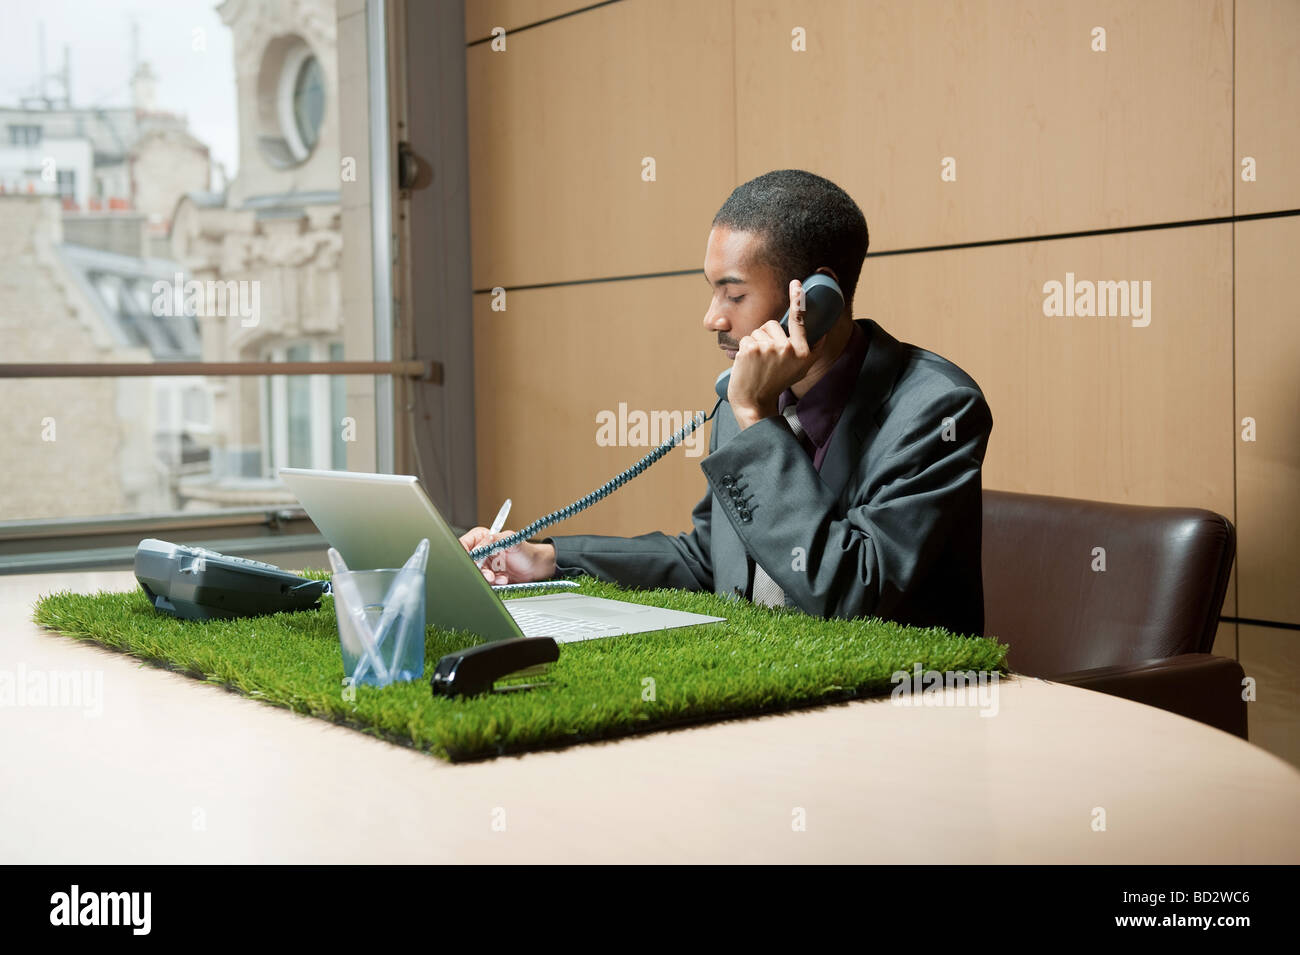 Man phoning at grass-covered desk - Stock Image